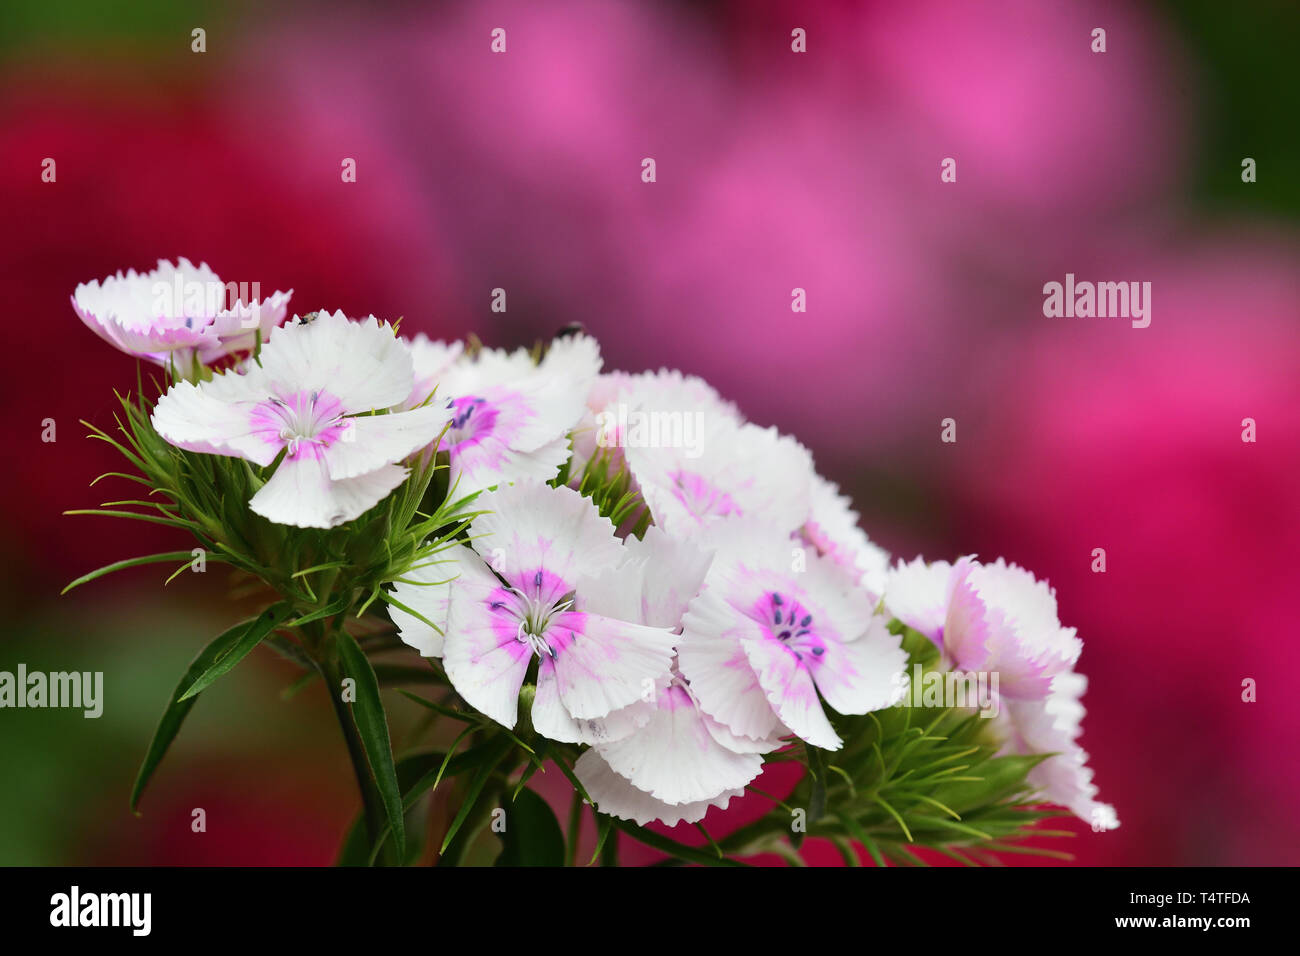 Close up of white sweet William (dianthus barbatus) flowers wth a pink background - Stock Image